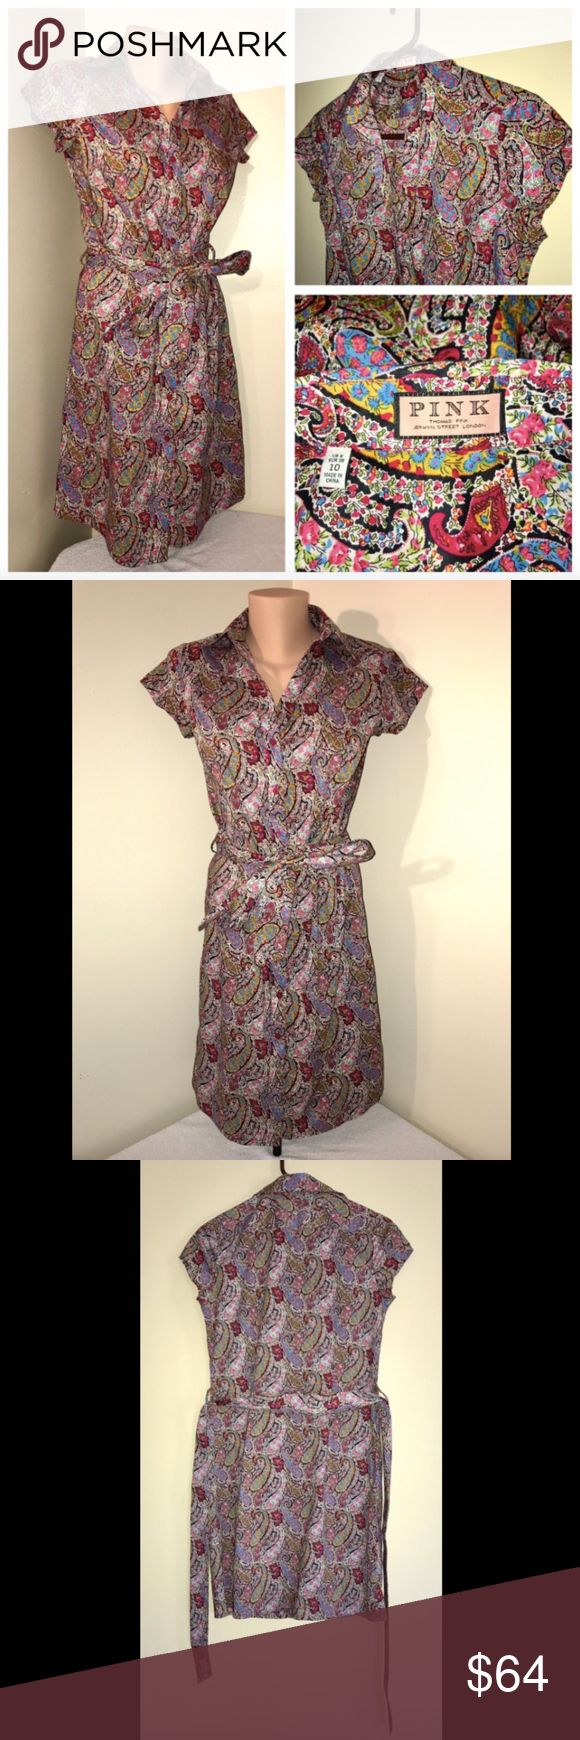 Thomas Pink Rainbow Color Paisley Style Dress US-6 ALL OFFERS CONSIDERED!  Description Size: 6 (US) Color: Multi-Colored Rainbow Paisley Design Tag Measurements- 6 (US) Condition: Excellent Features: Cap Sleeve, No Pilling, All Buttons Intact, No Fading, Comfortable  Flaws: None  Measurements:  Chest - 18.5 inches  Waist - 16 inches  Shoulder - 15 inches  Sleeve - 4.5 inches  Length - 37.5 inches Thomas Pink Dresses Midi